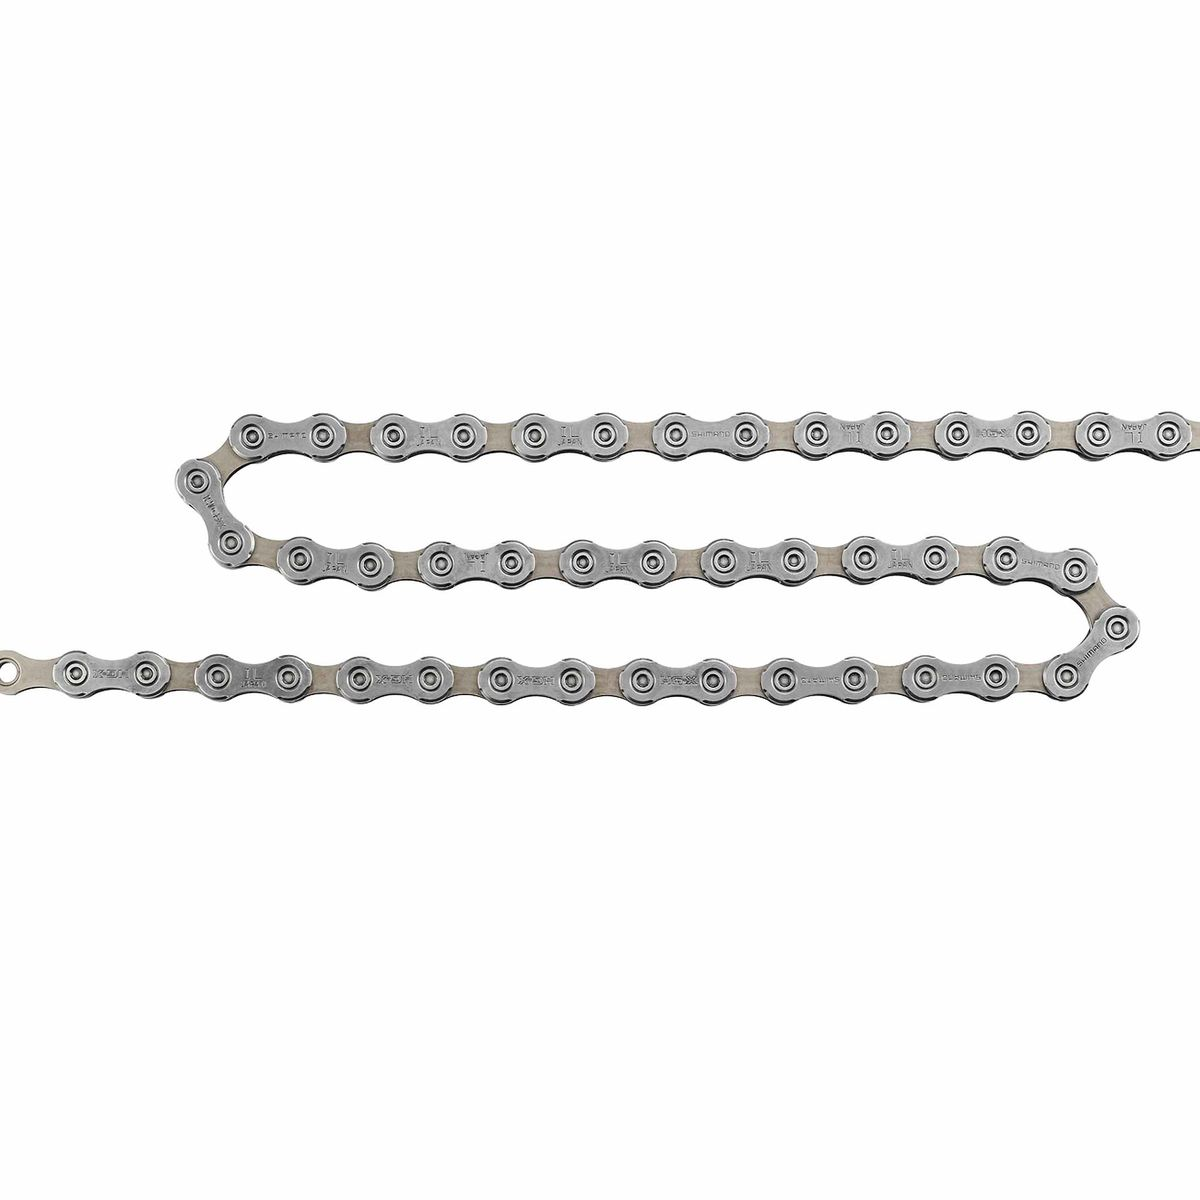 Deore CN-HG54 HG-X chain